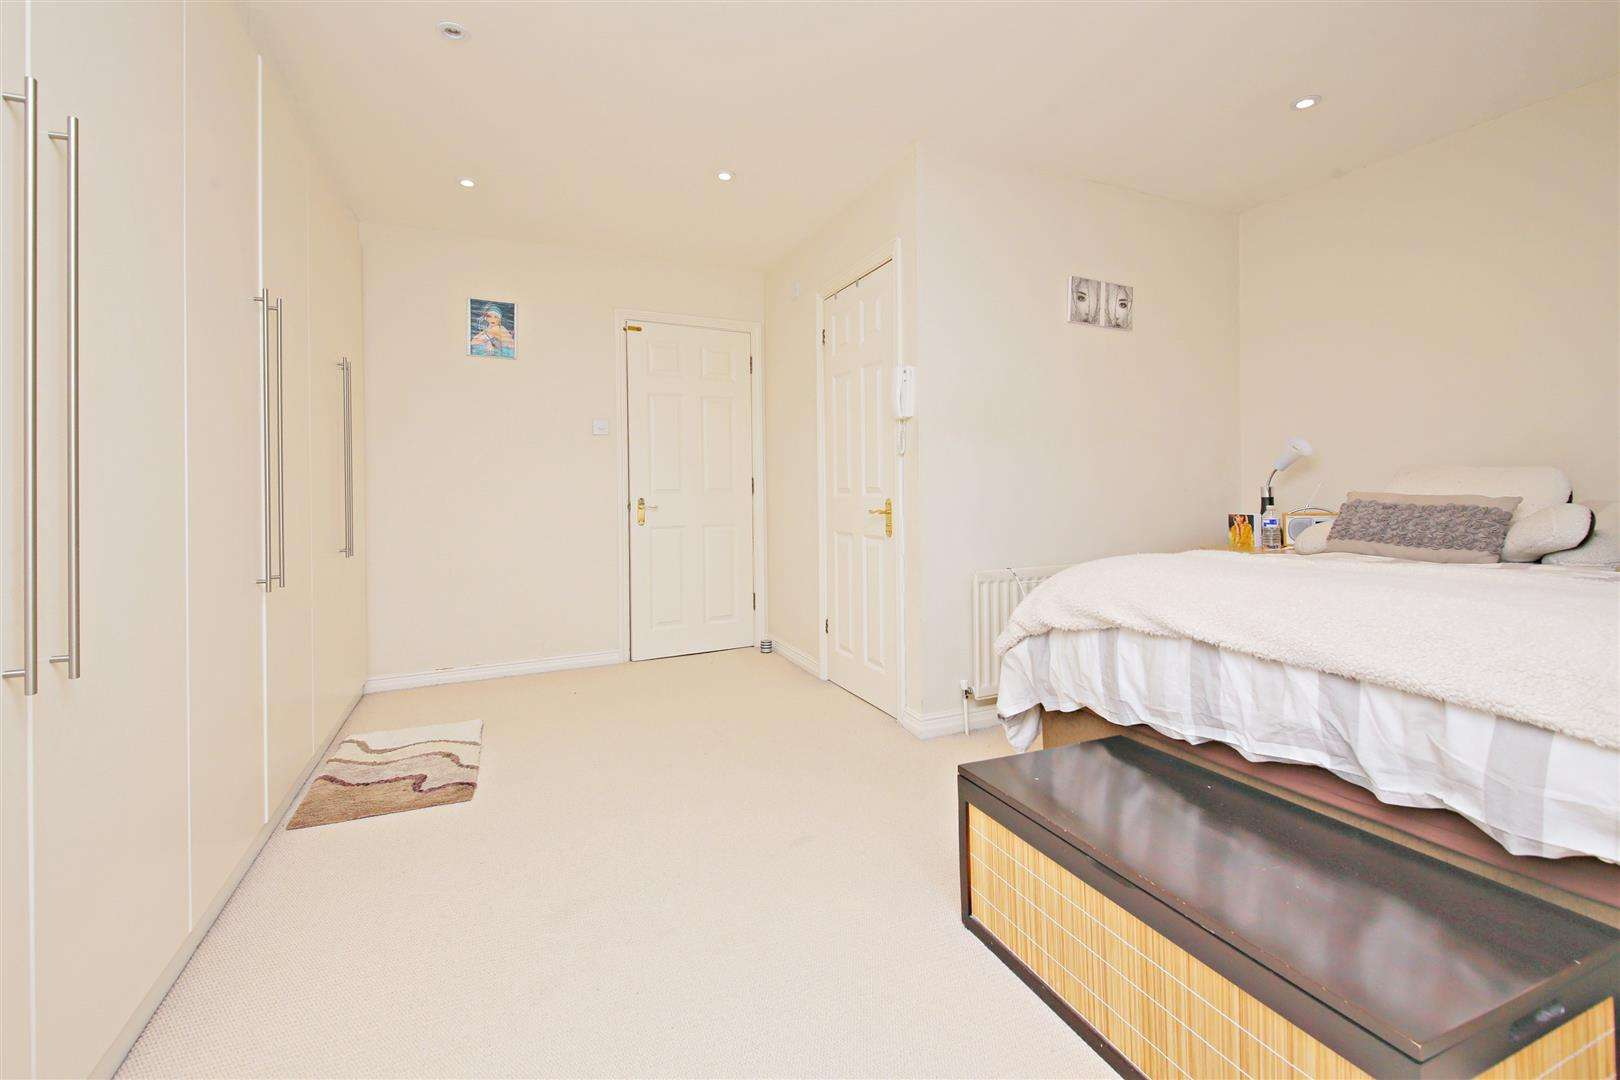 4 bed to rent in Shenley - (Property Image 8)